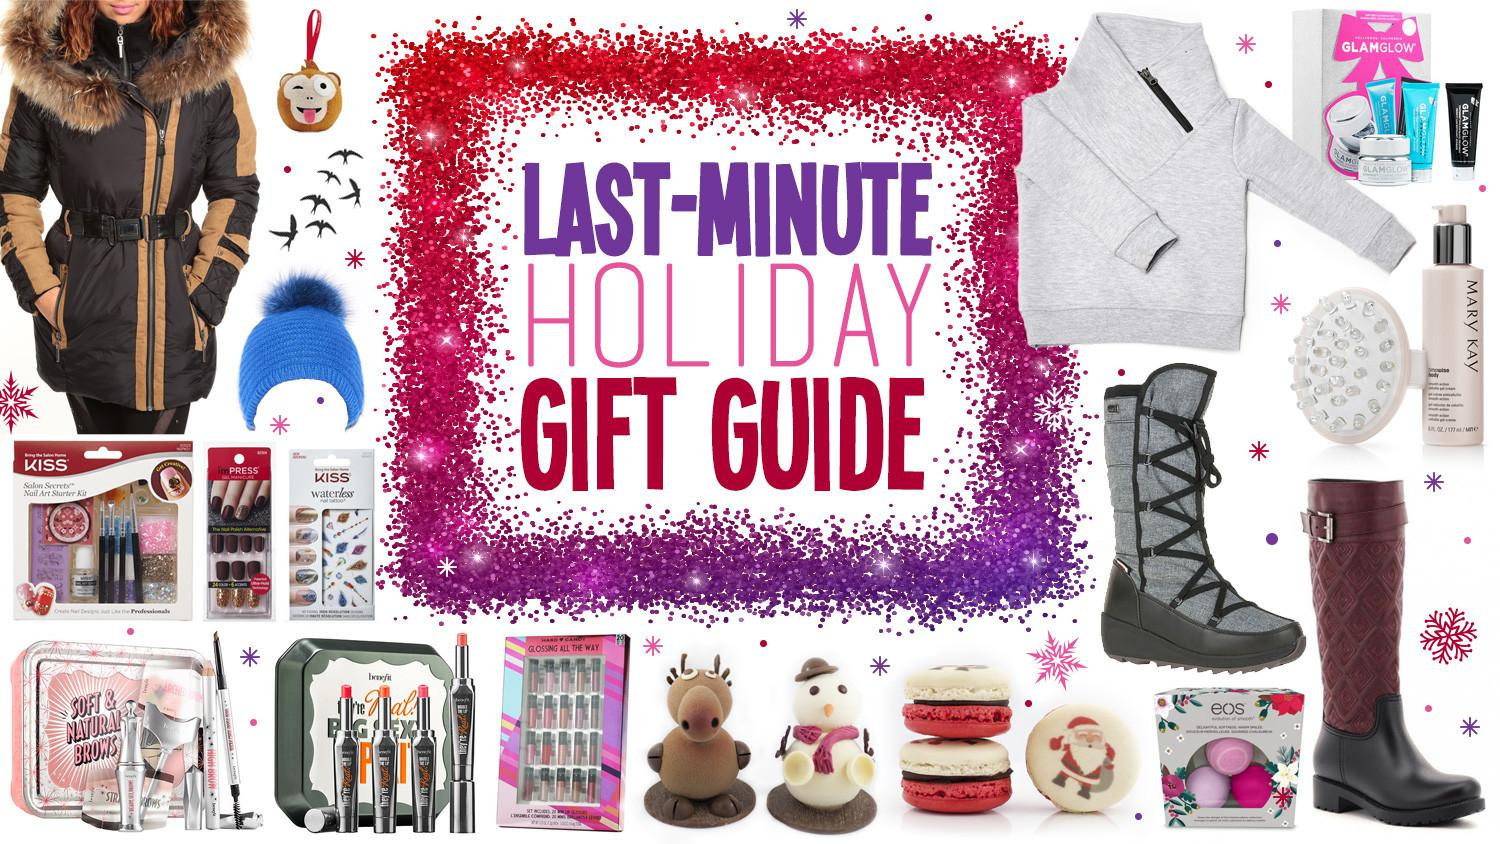 Last Minute Holiday Gift Guide Celebrity Gossip